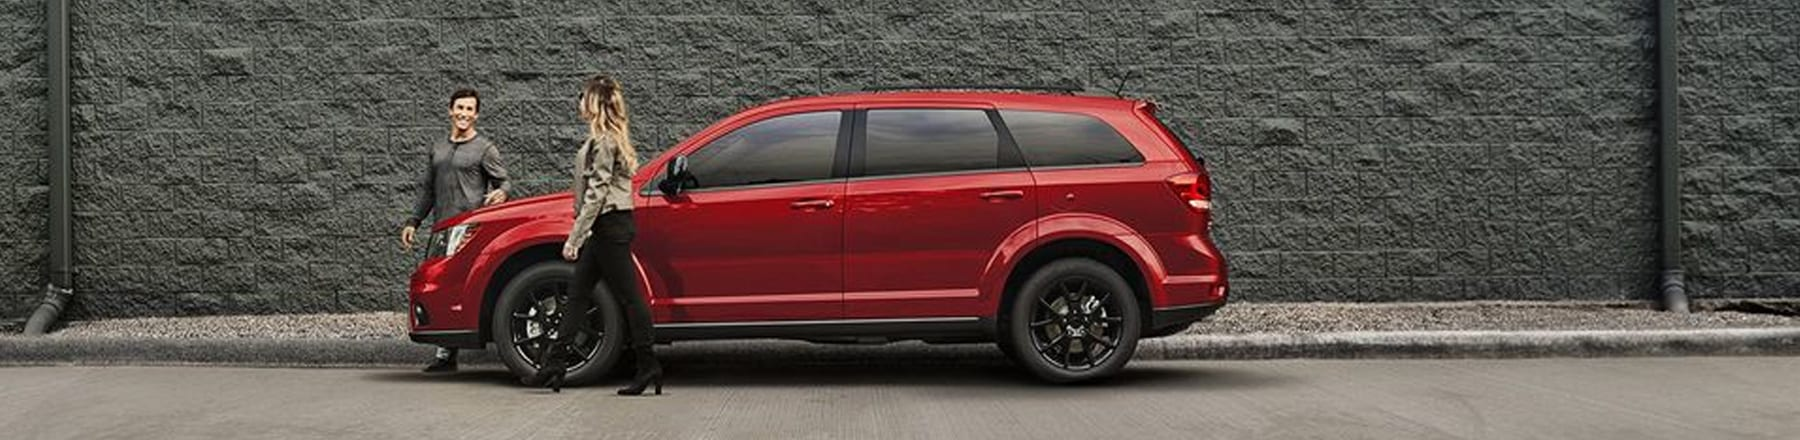 Side view of 2018 Dodge Journey parked